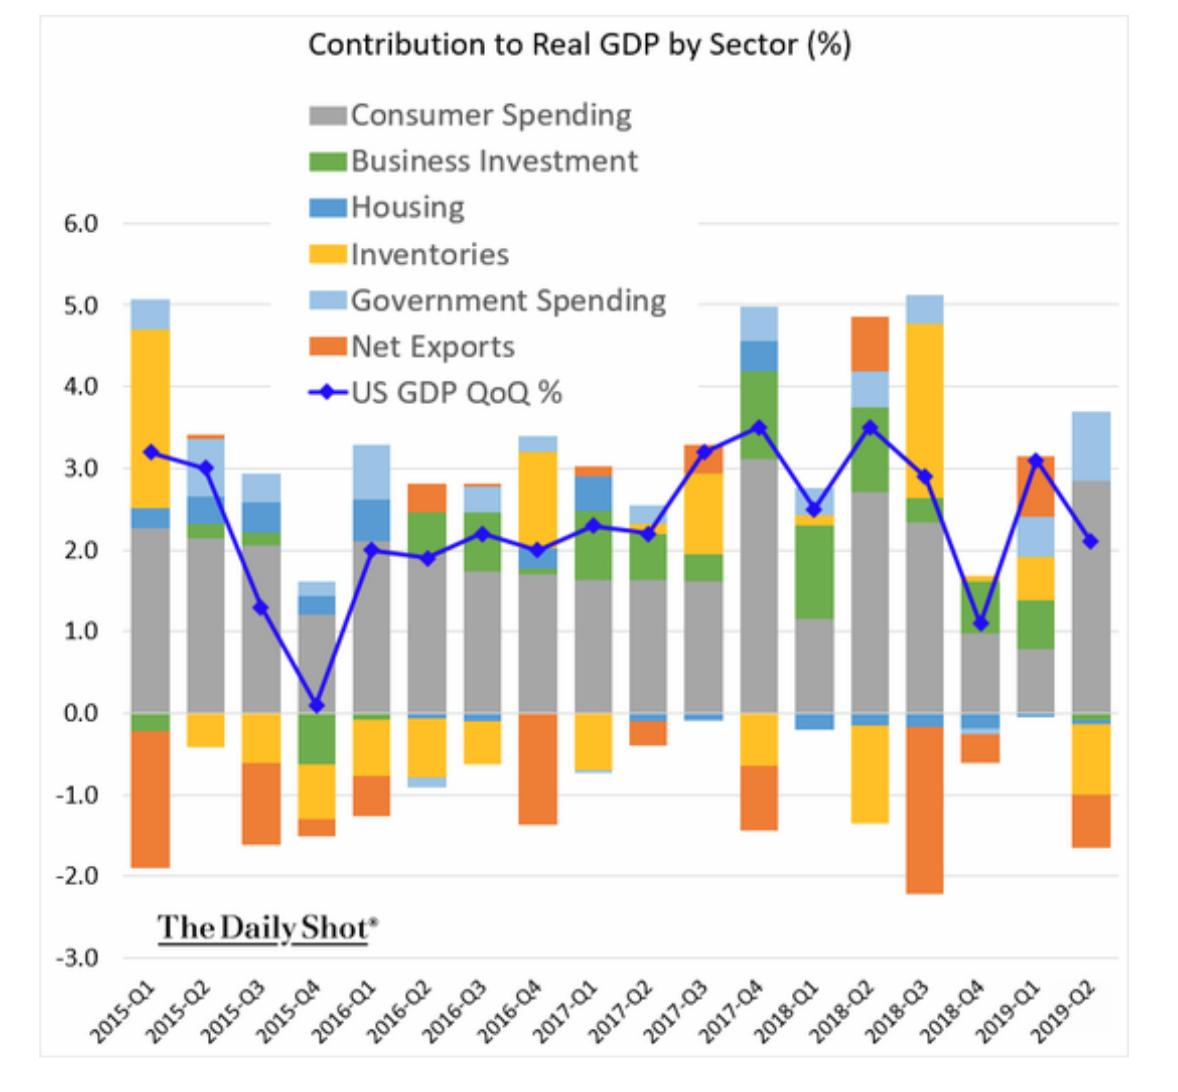 contribution-to-real-gdp-by-sector